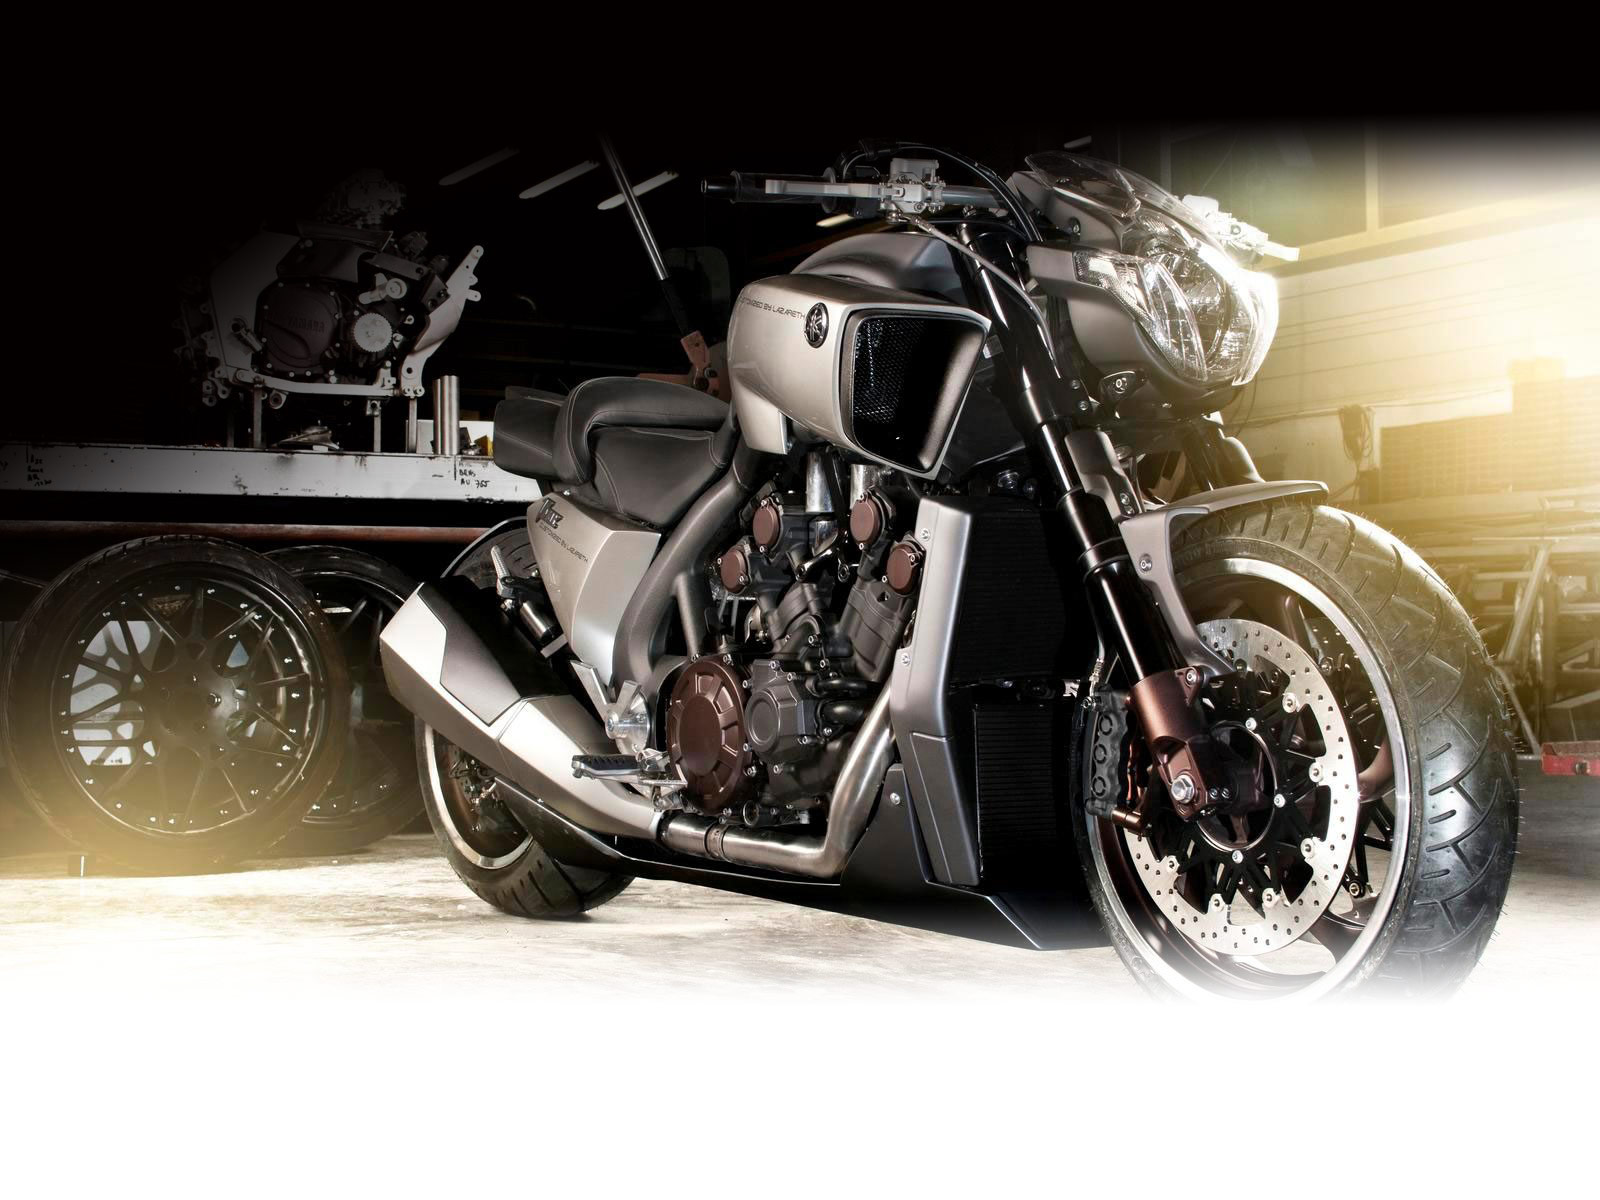 Yamaha VMAX Hyper Modified Marcus Walz 2013 images #92110